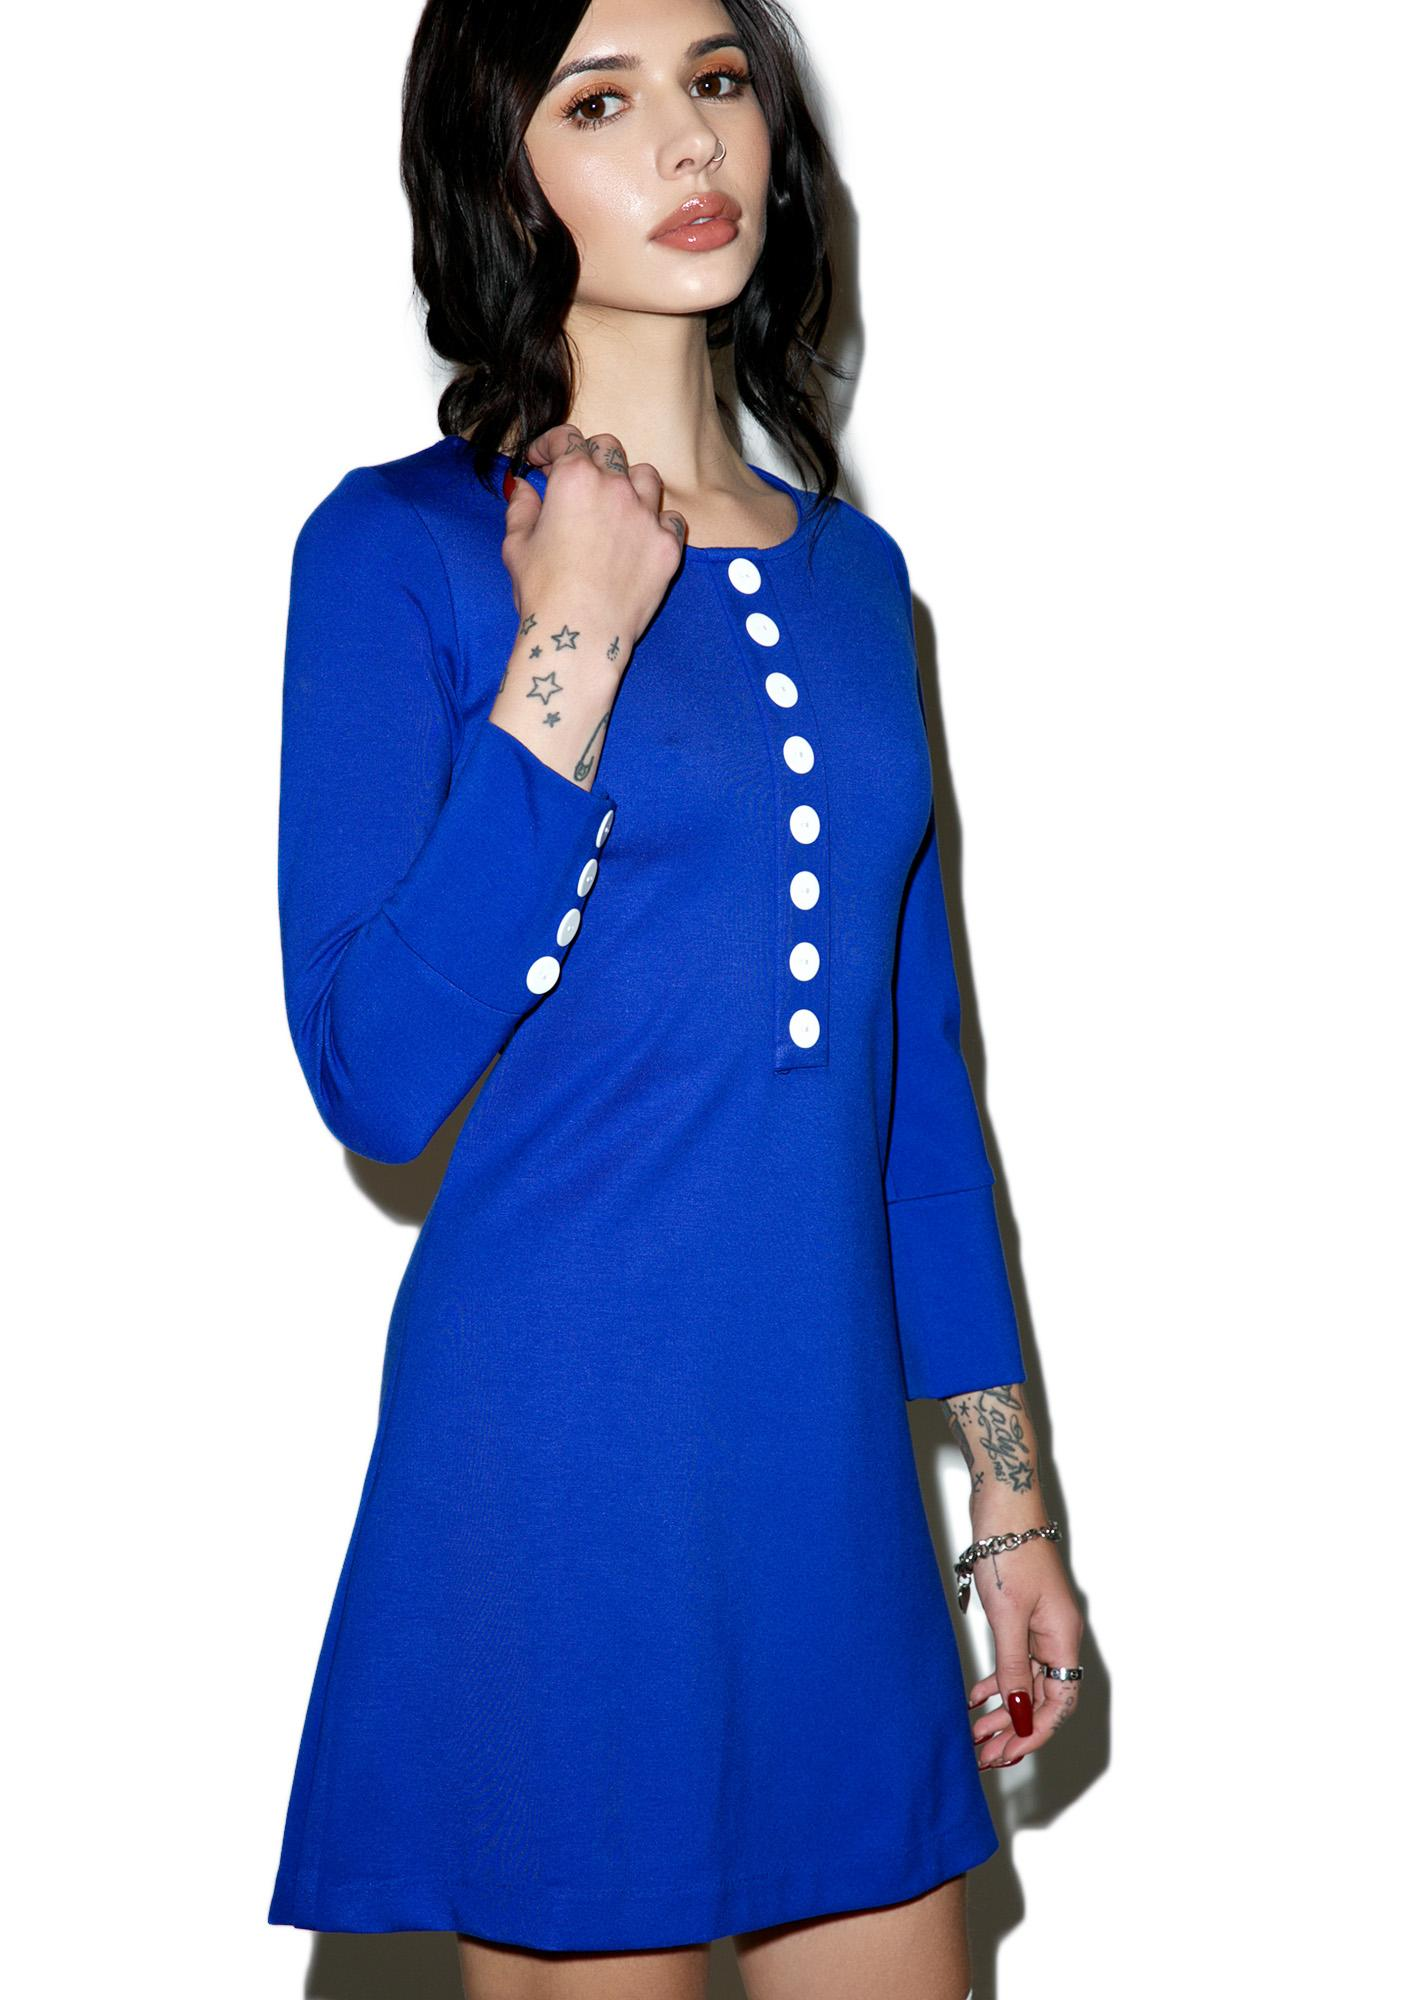 Sugarhigh + Lovestoned Sugarhigh Long-Sleeve Mini Dress